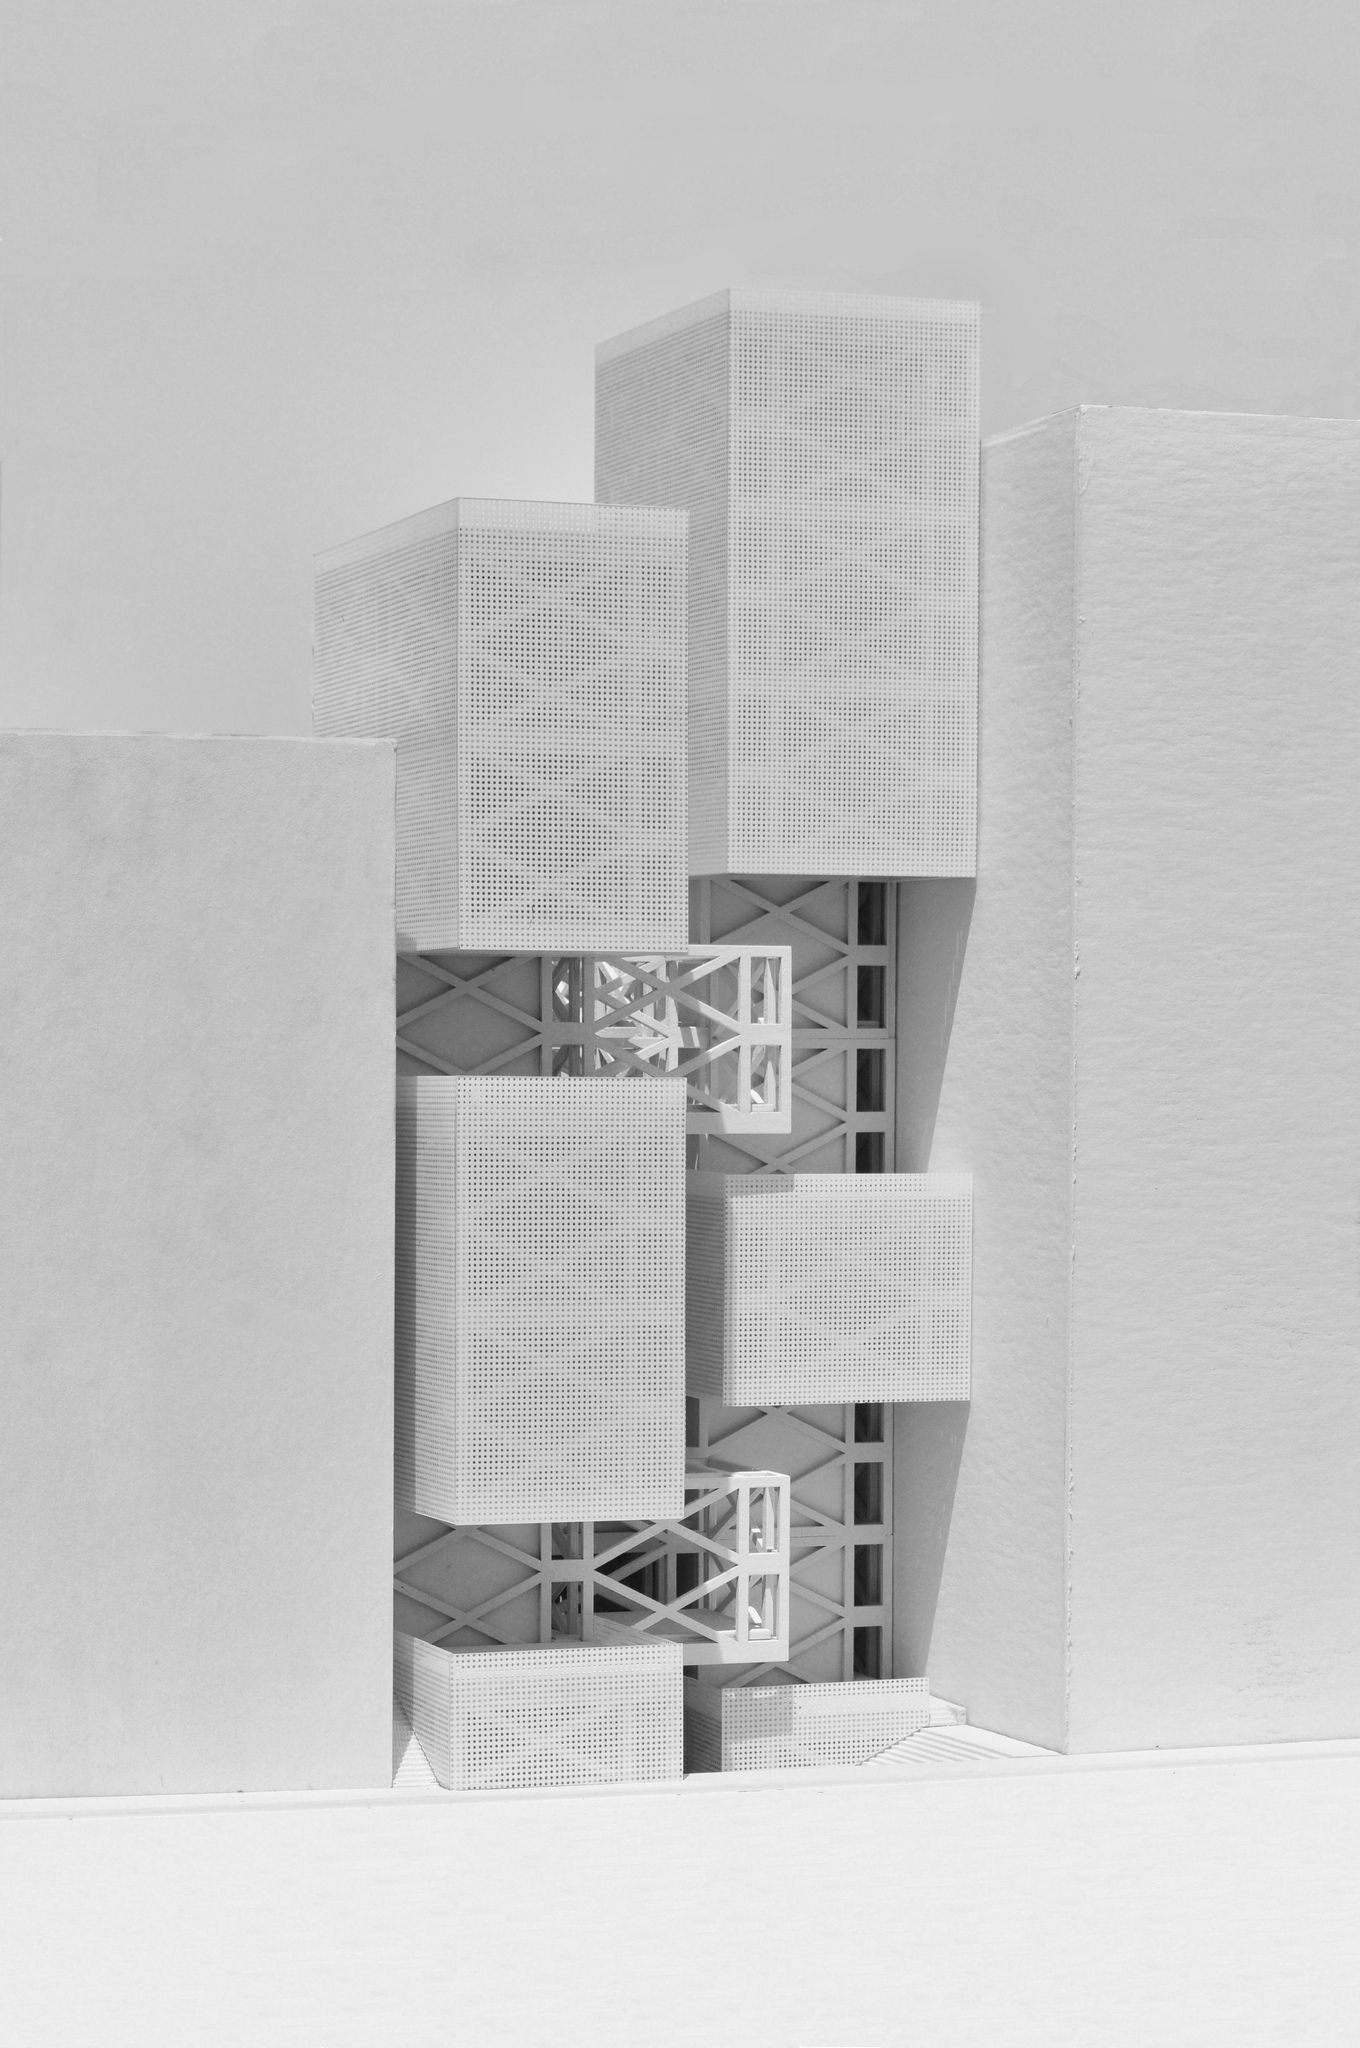 Vertical Streetscape Physical Model Architecture Model Concept Architecture Arch Model